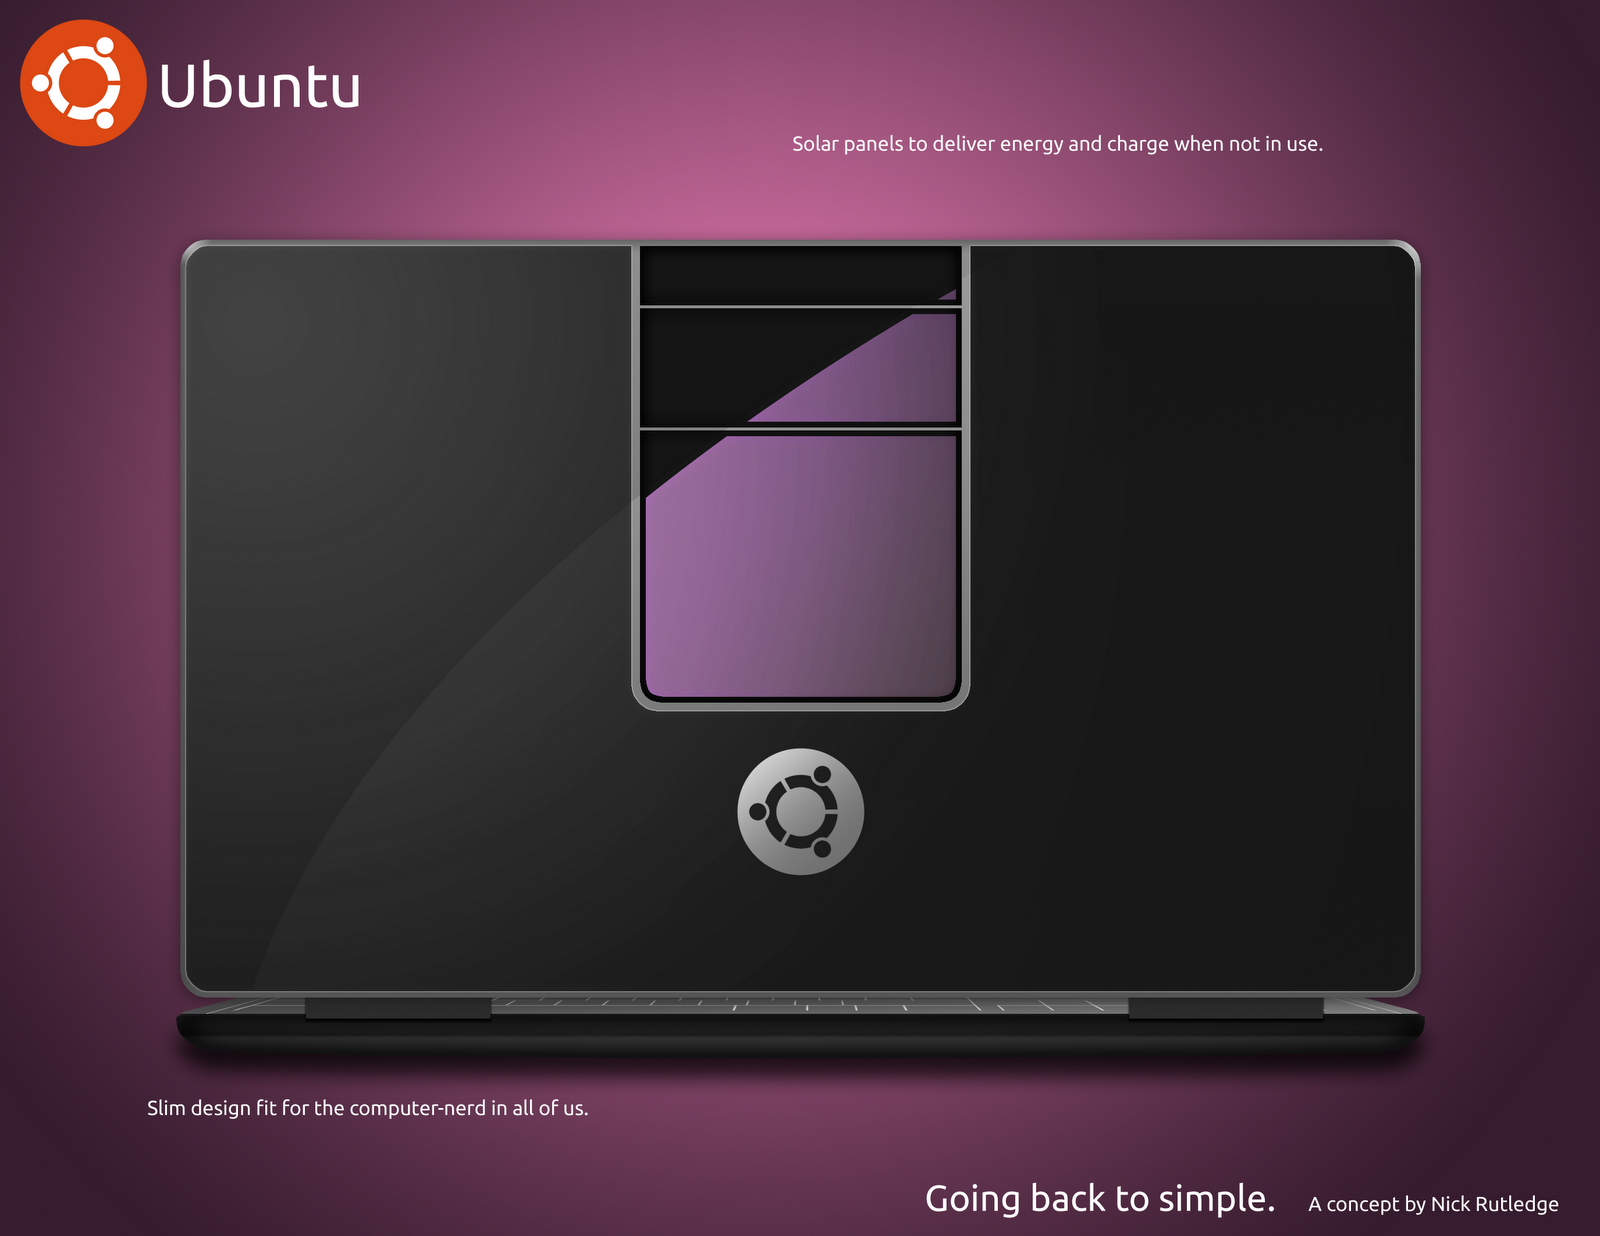 Ubuntu Laptop Design